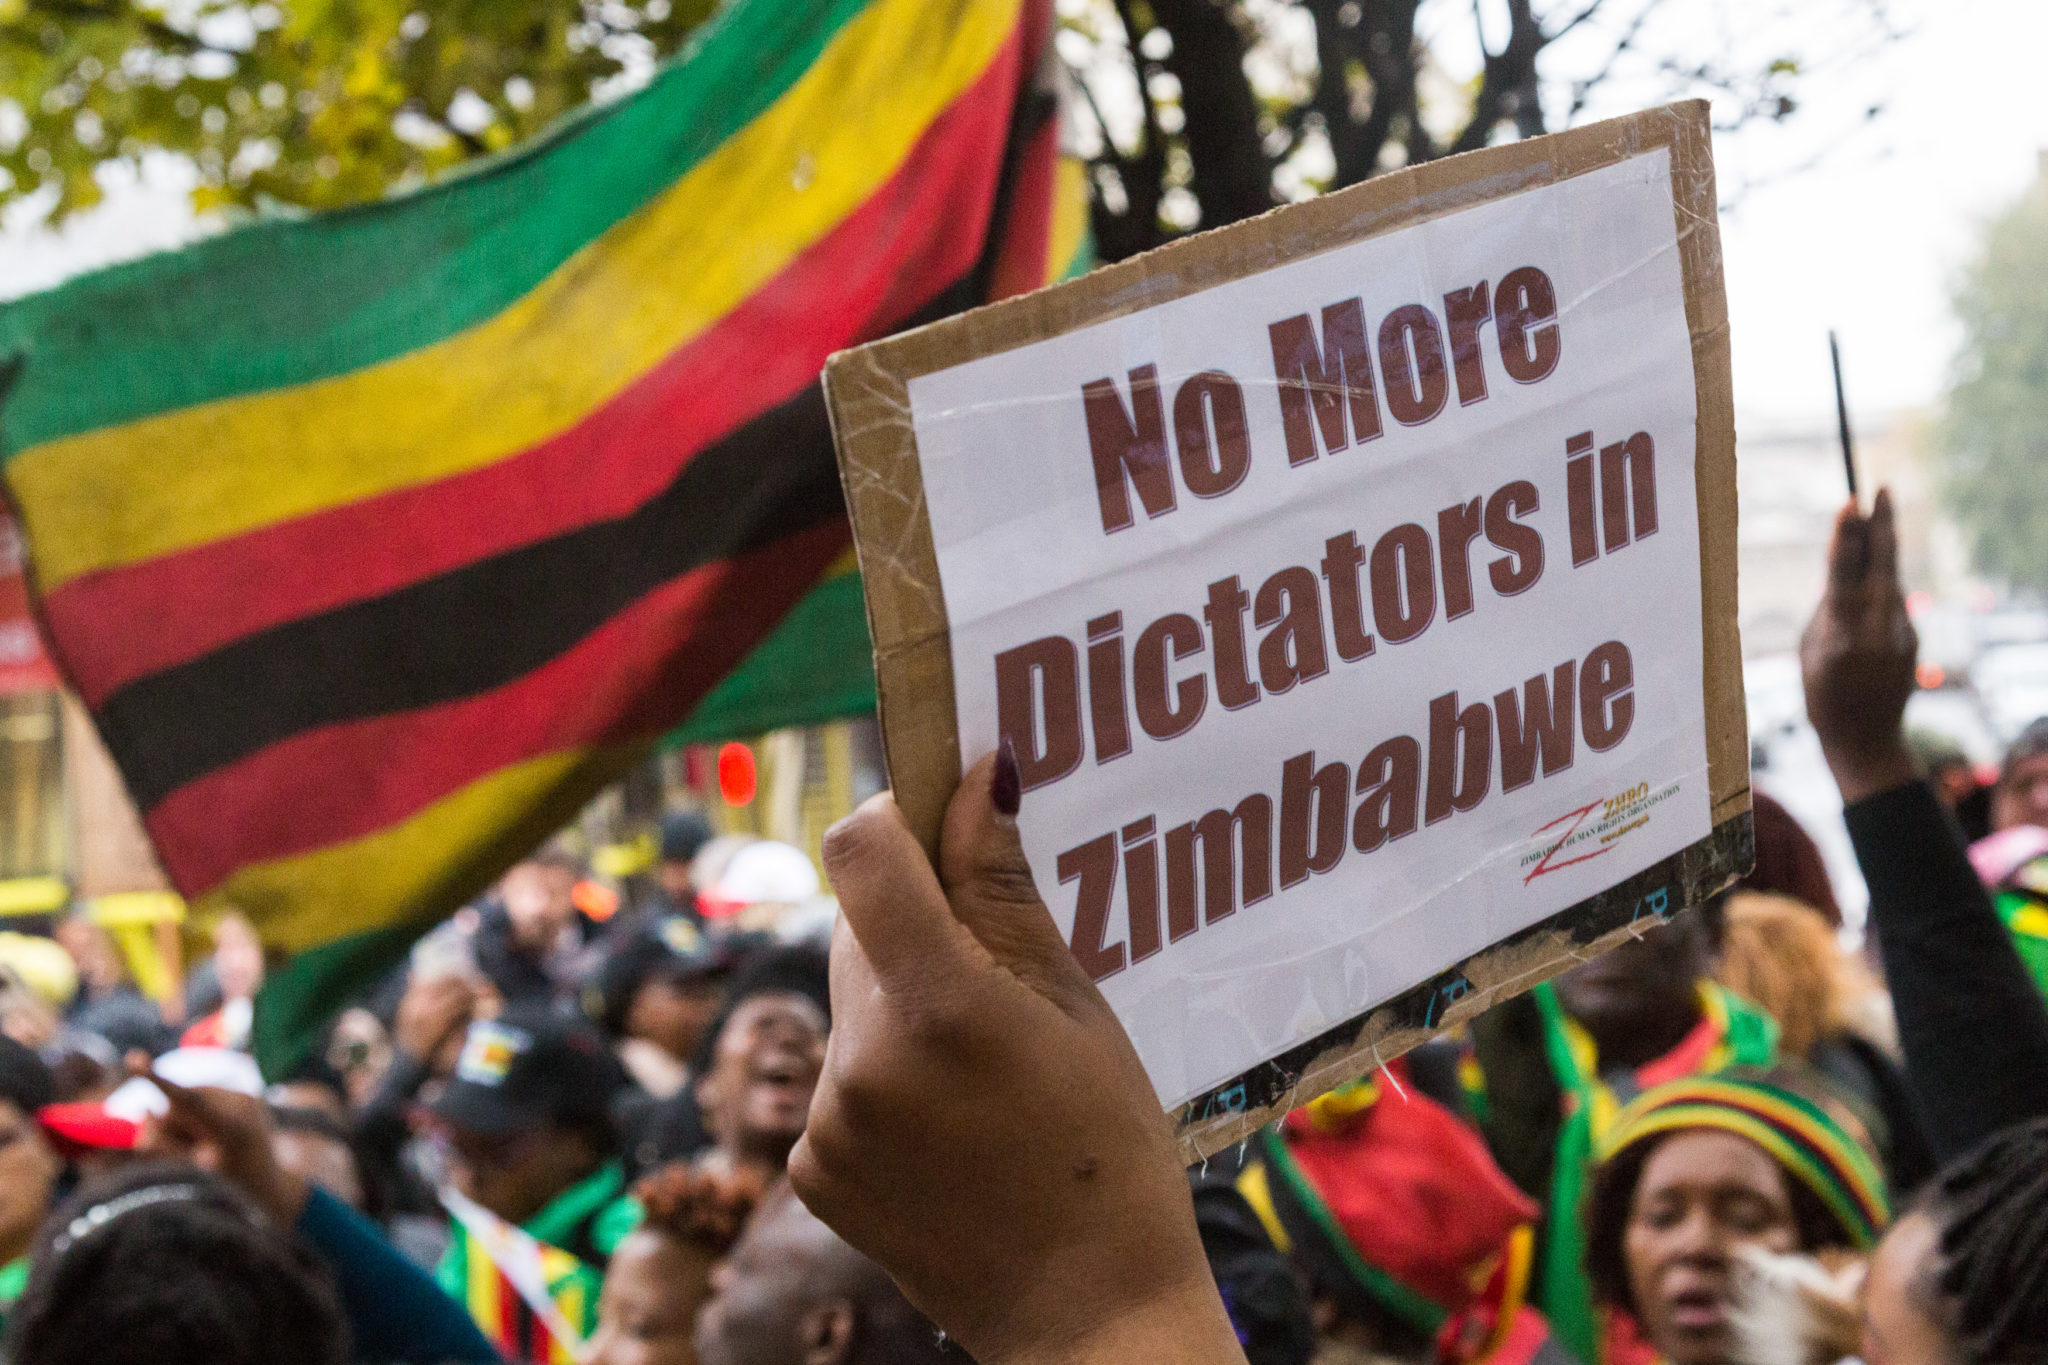 Zimbabweans Welcome Military Intervention